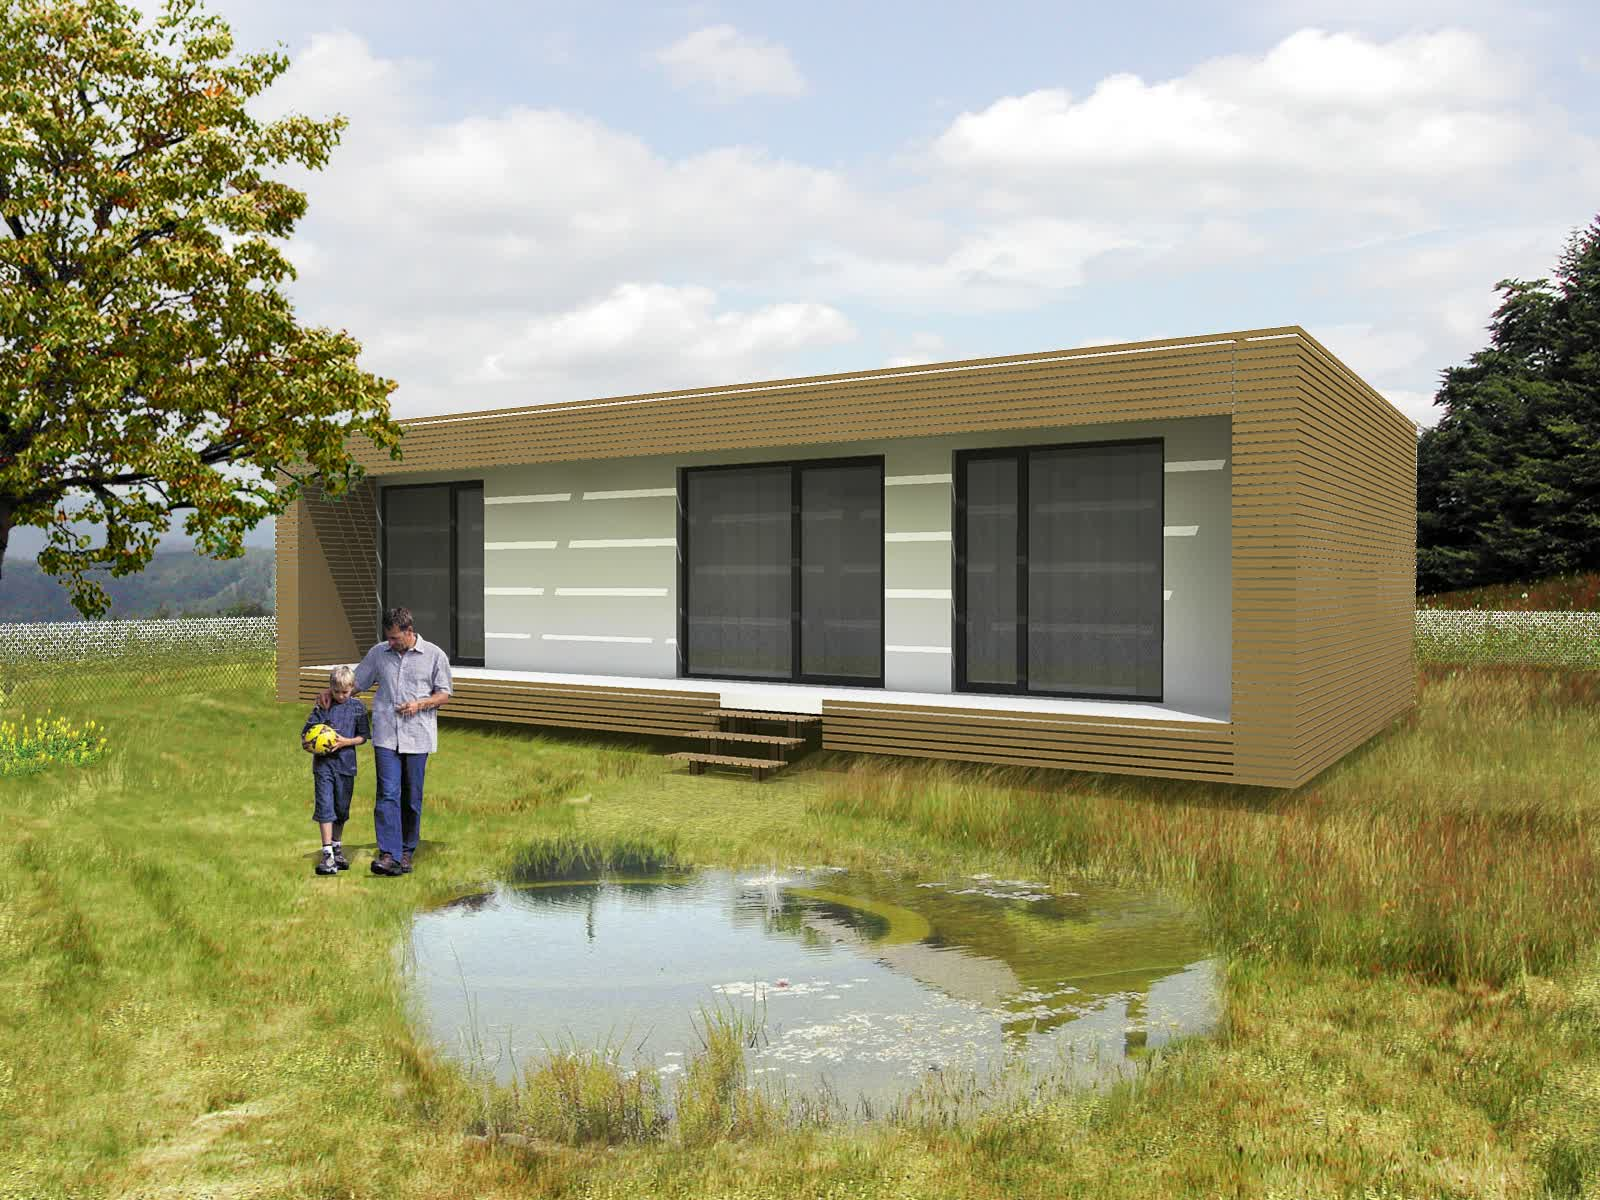 Image of: modern prefab homes ideas